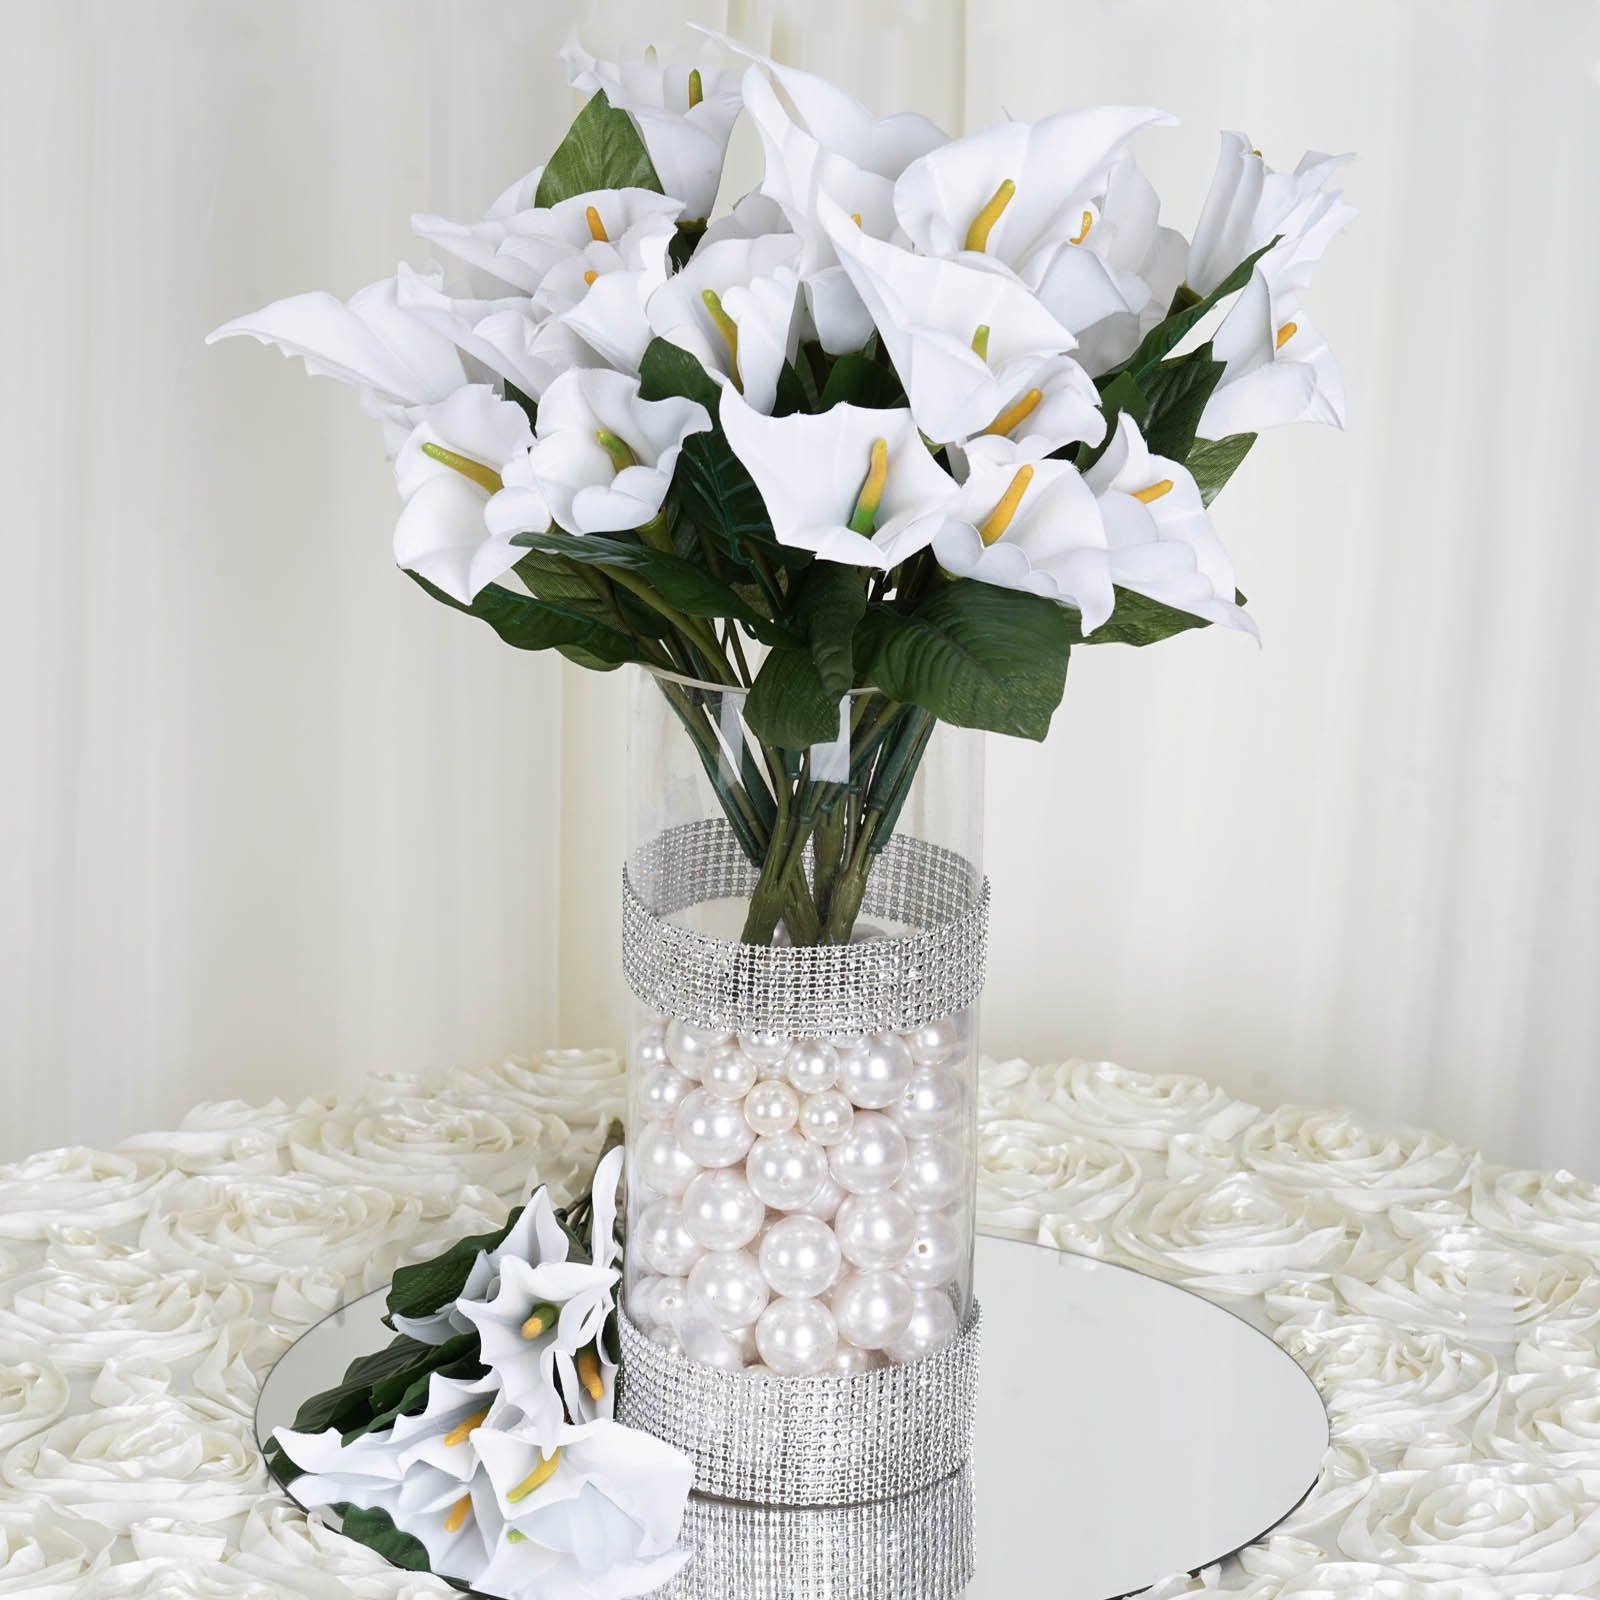 Artificial Flower Wedding Centerpieces: 168 Silk Calla Lily Flowers For Wedding Bouquets